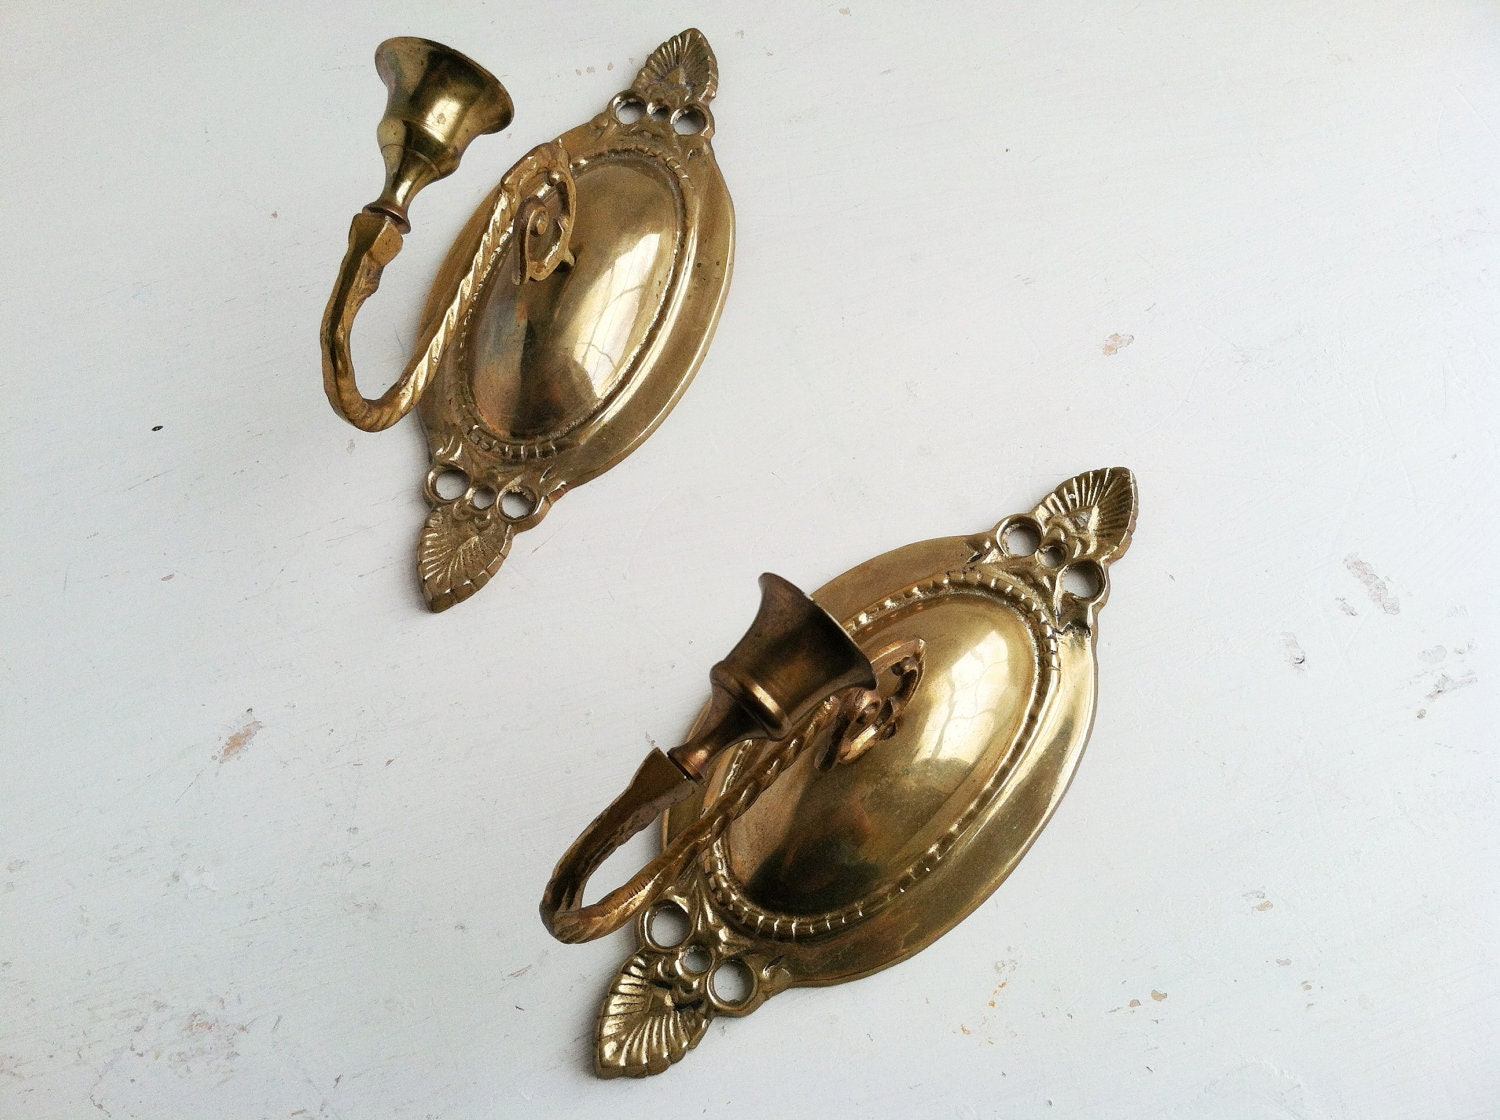 Brass Wall Sconces Candle Holders : Vintage Brass Wall Sconce Candle Holders by KindlingVintage